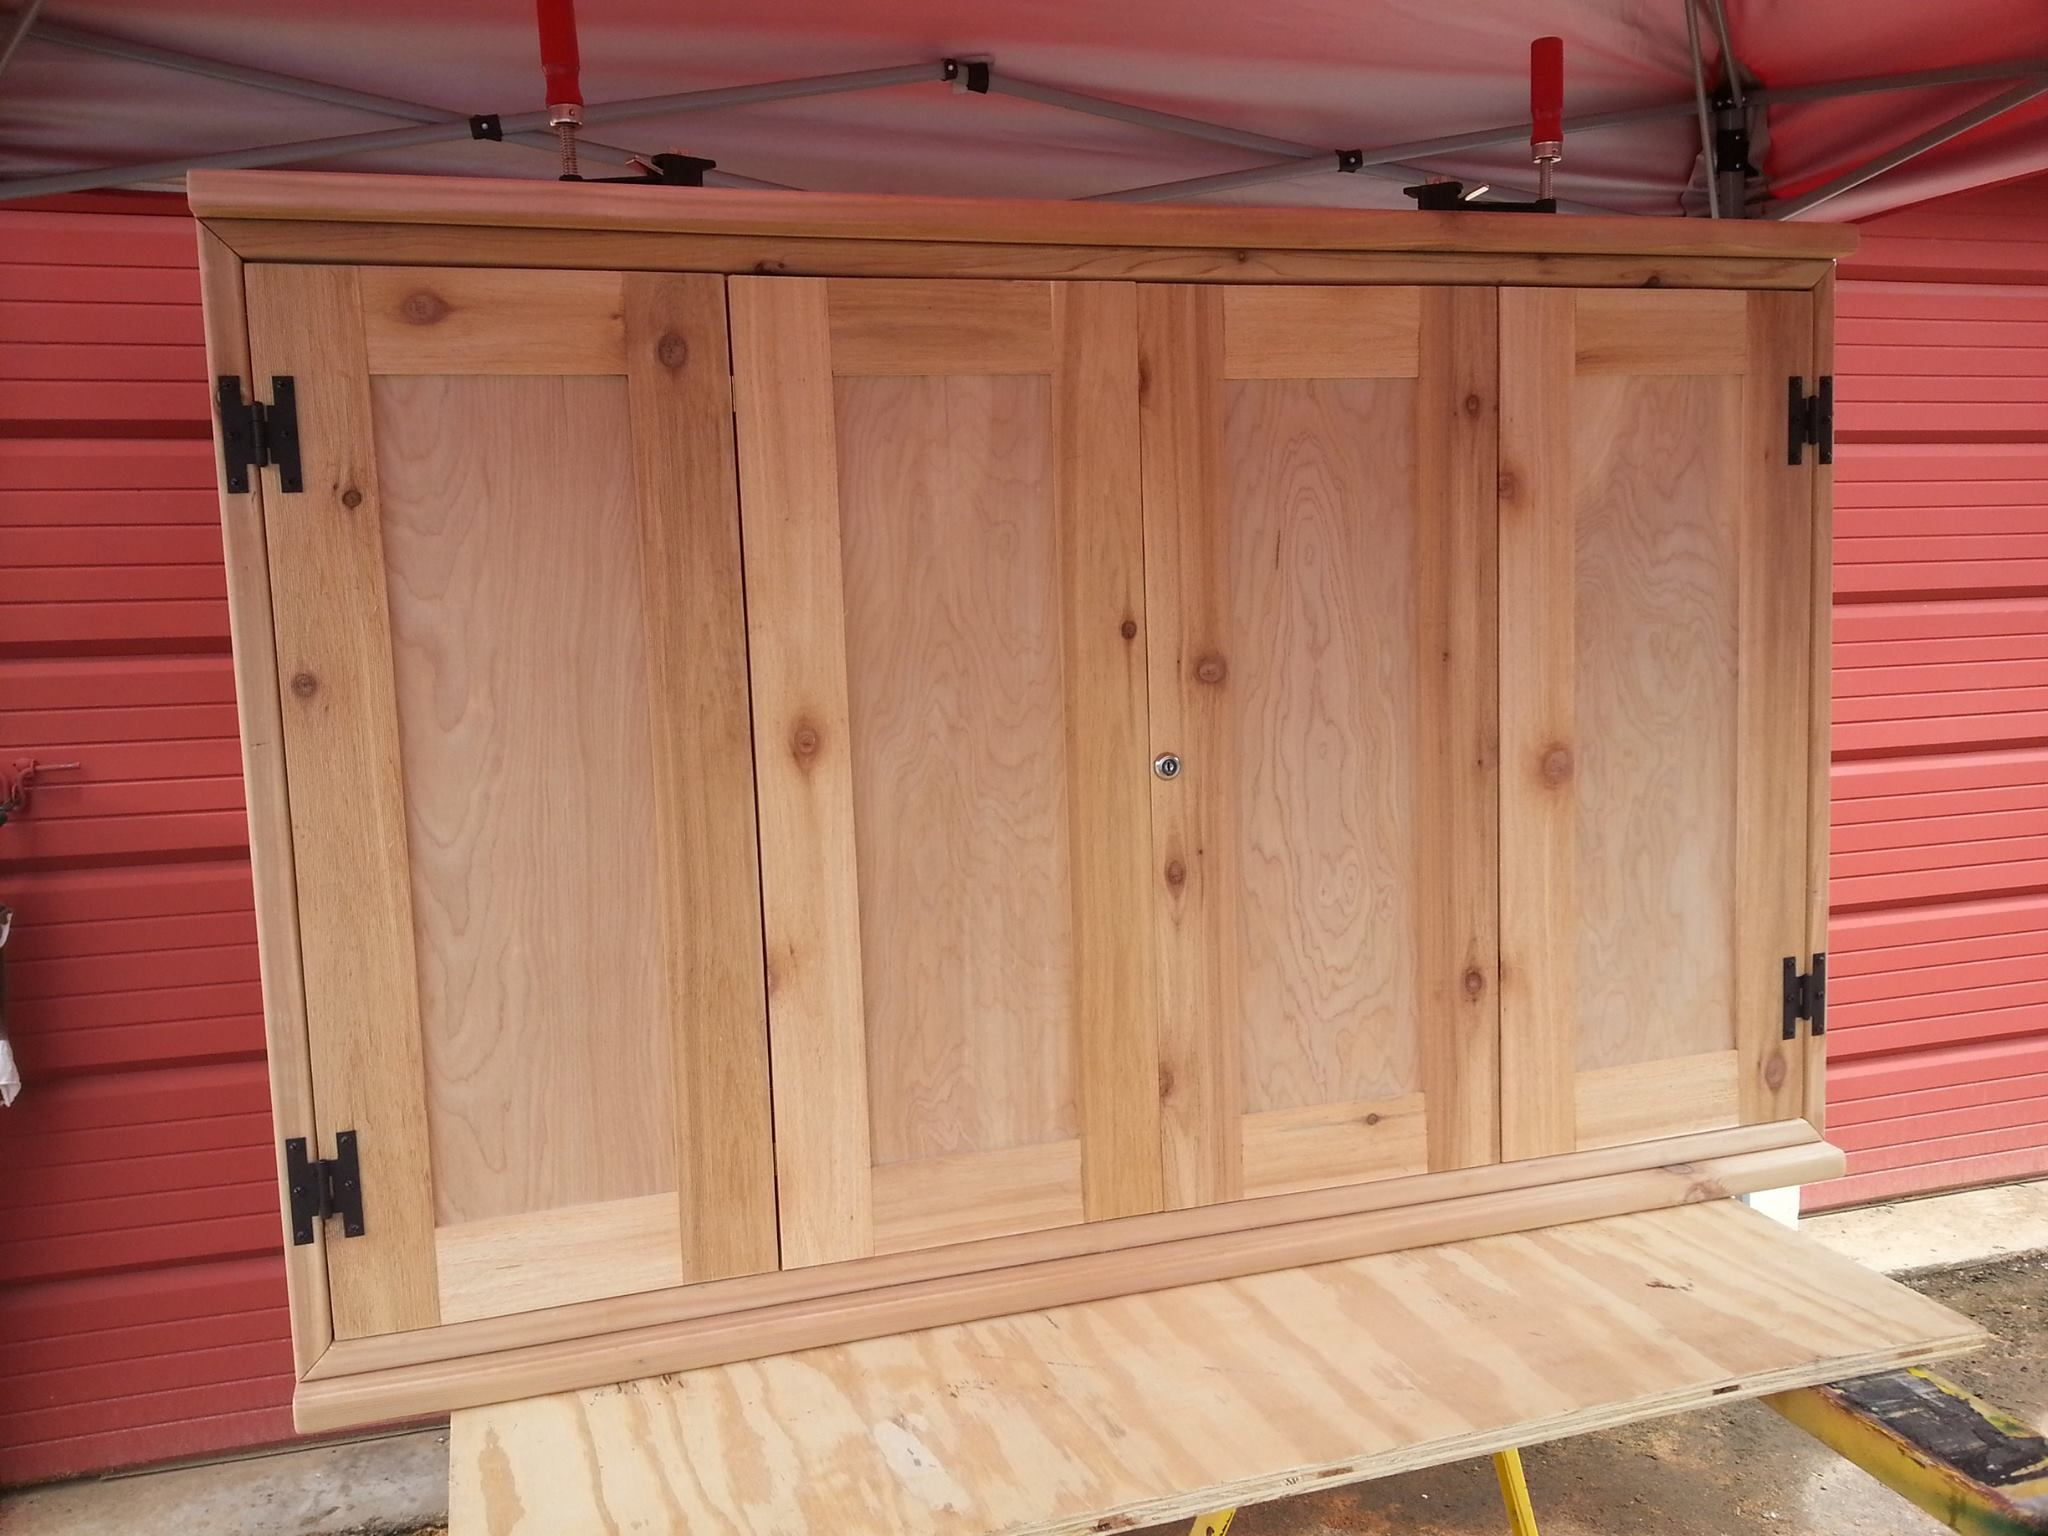 Exterior Tv Cabinet I Did For A Customer Kreg Jig Made Quick Work Of The Doors Marc B Outdoor Tv Cabinet Woodworking Plans Tv Tv Cabinet Diy